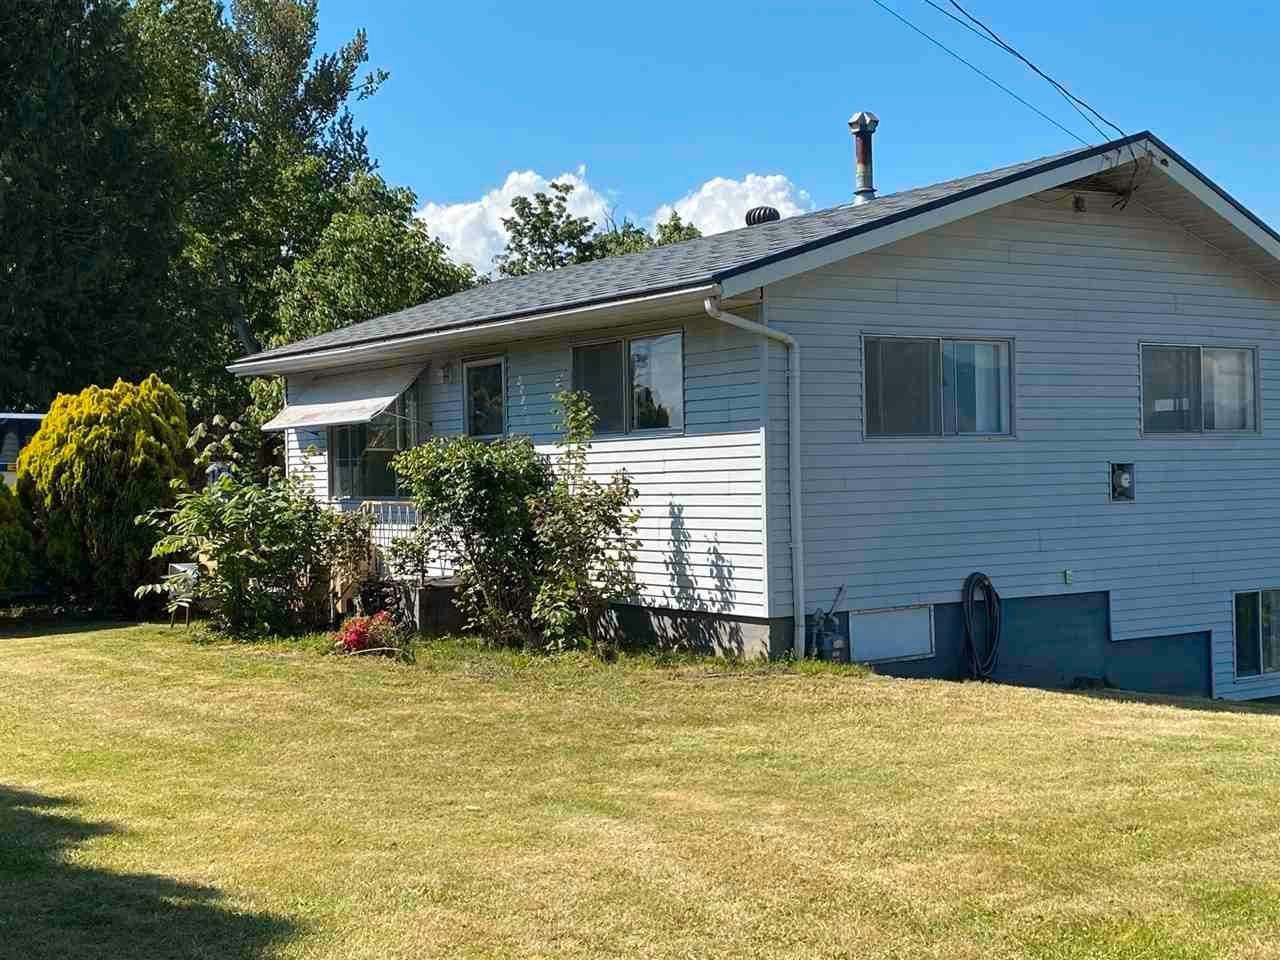 Main Photo: 49155 YALE Road in Chilliwack: East Chilliwack House for sale : MLS®# R2580755